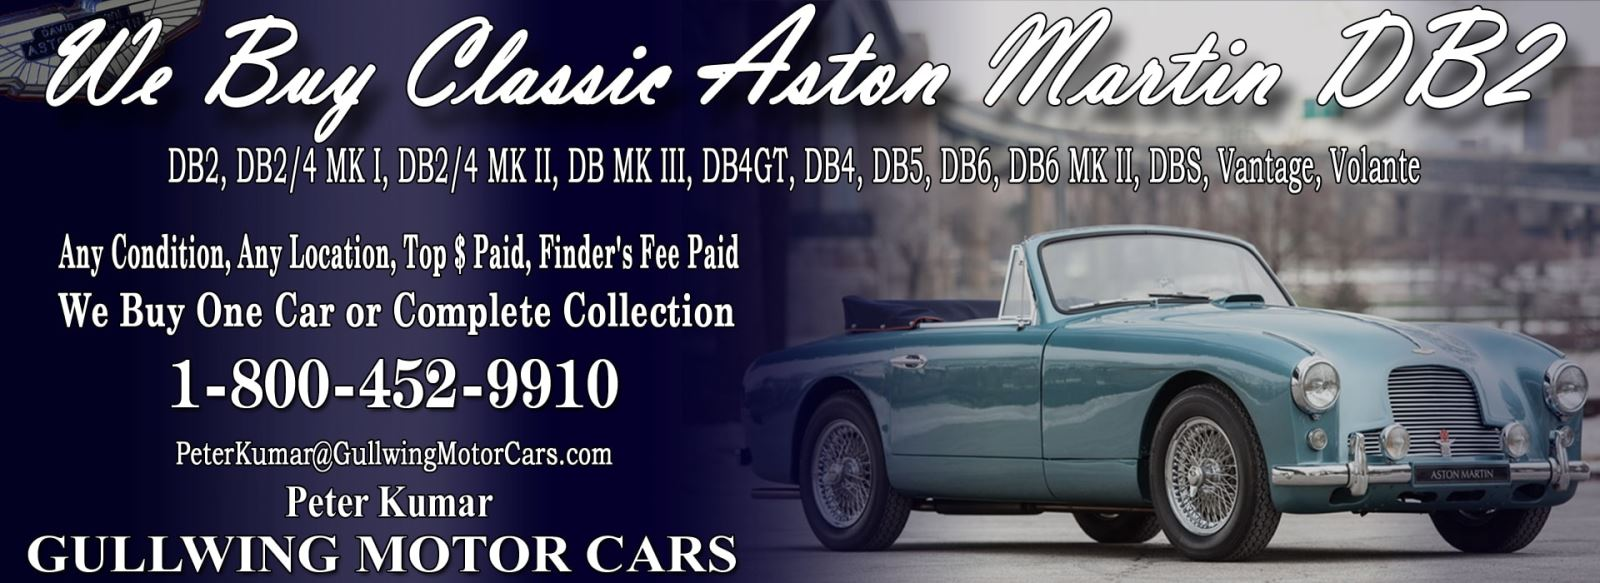 Classic Aston Martin DB3 for sale, we buy vintage Aston Martin DB3. Call Peter Kumar. Gullwing Motor